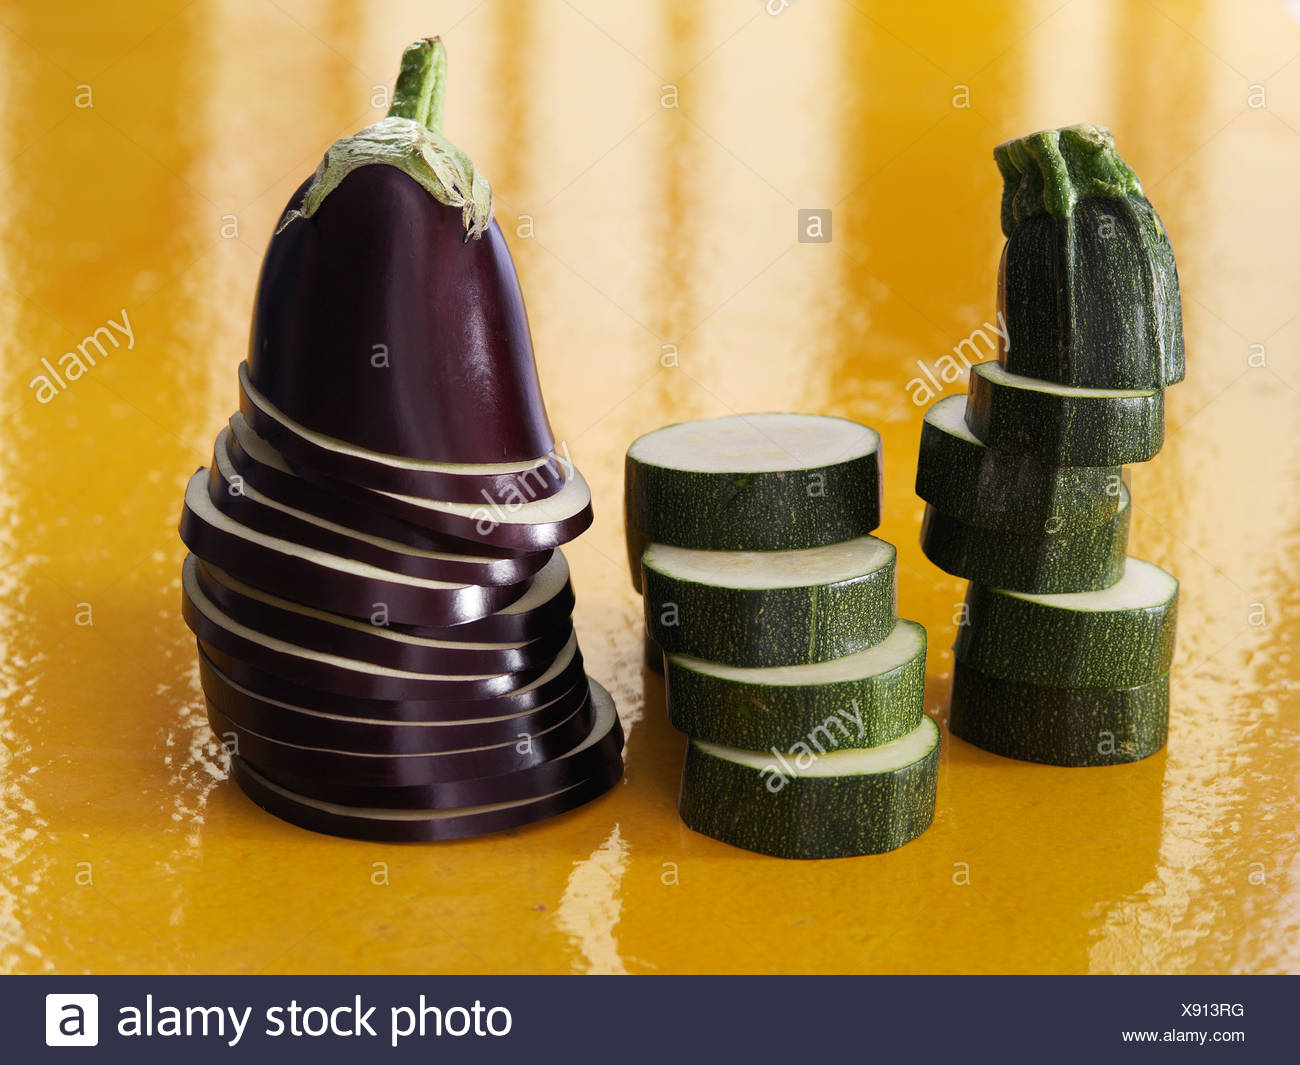 Eggplants and zucchinis cut in round slices - Stock Image